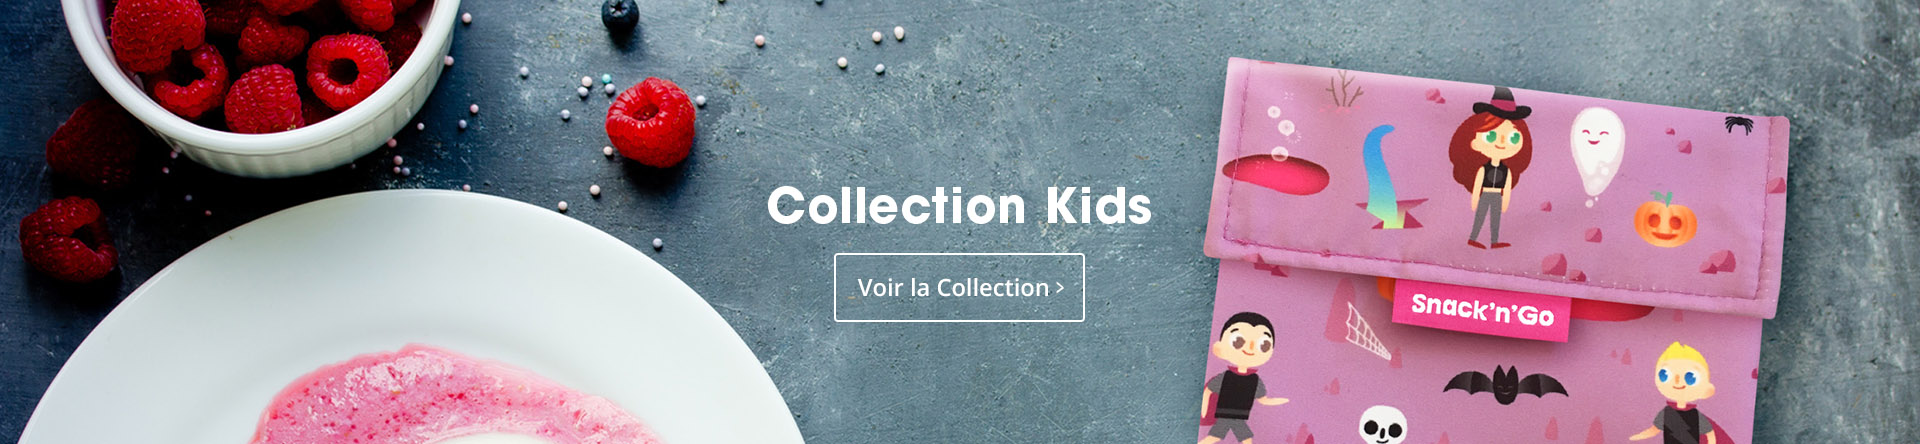 Nouveau Collection Kids